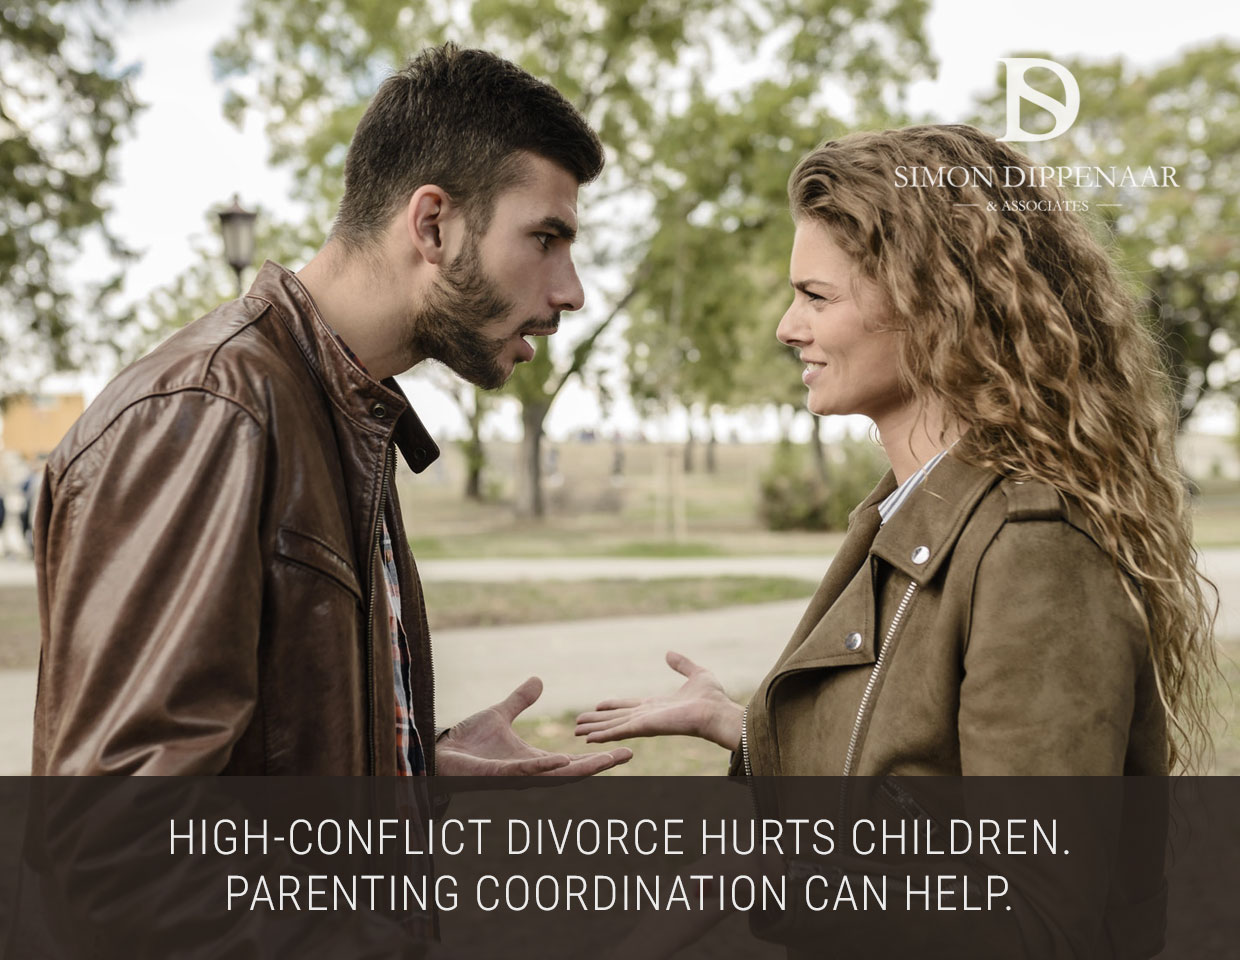 Parenting coordination - Facilitation